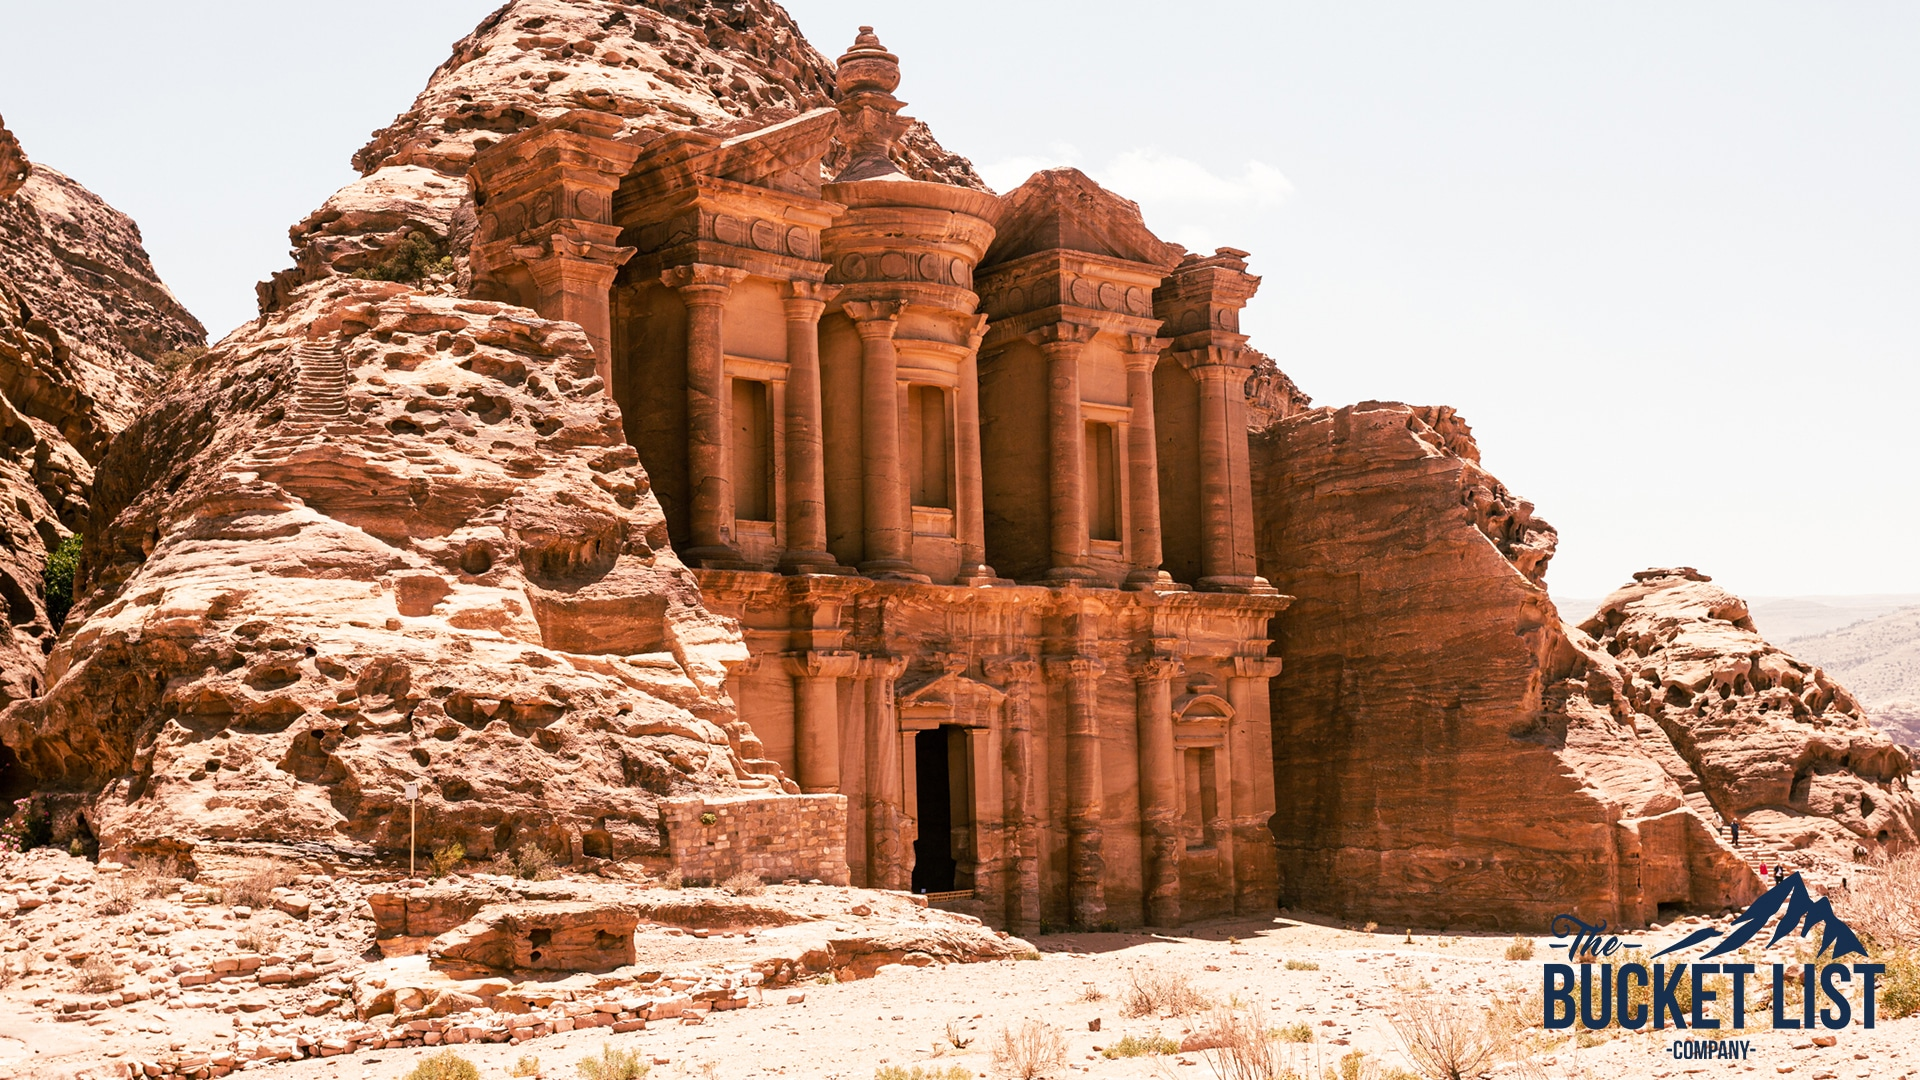 The amazing wonder of the world Petra that is found caved into a mountain side in Jordan